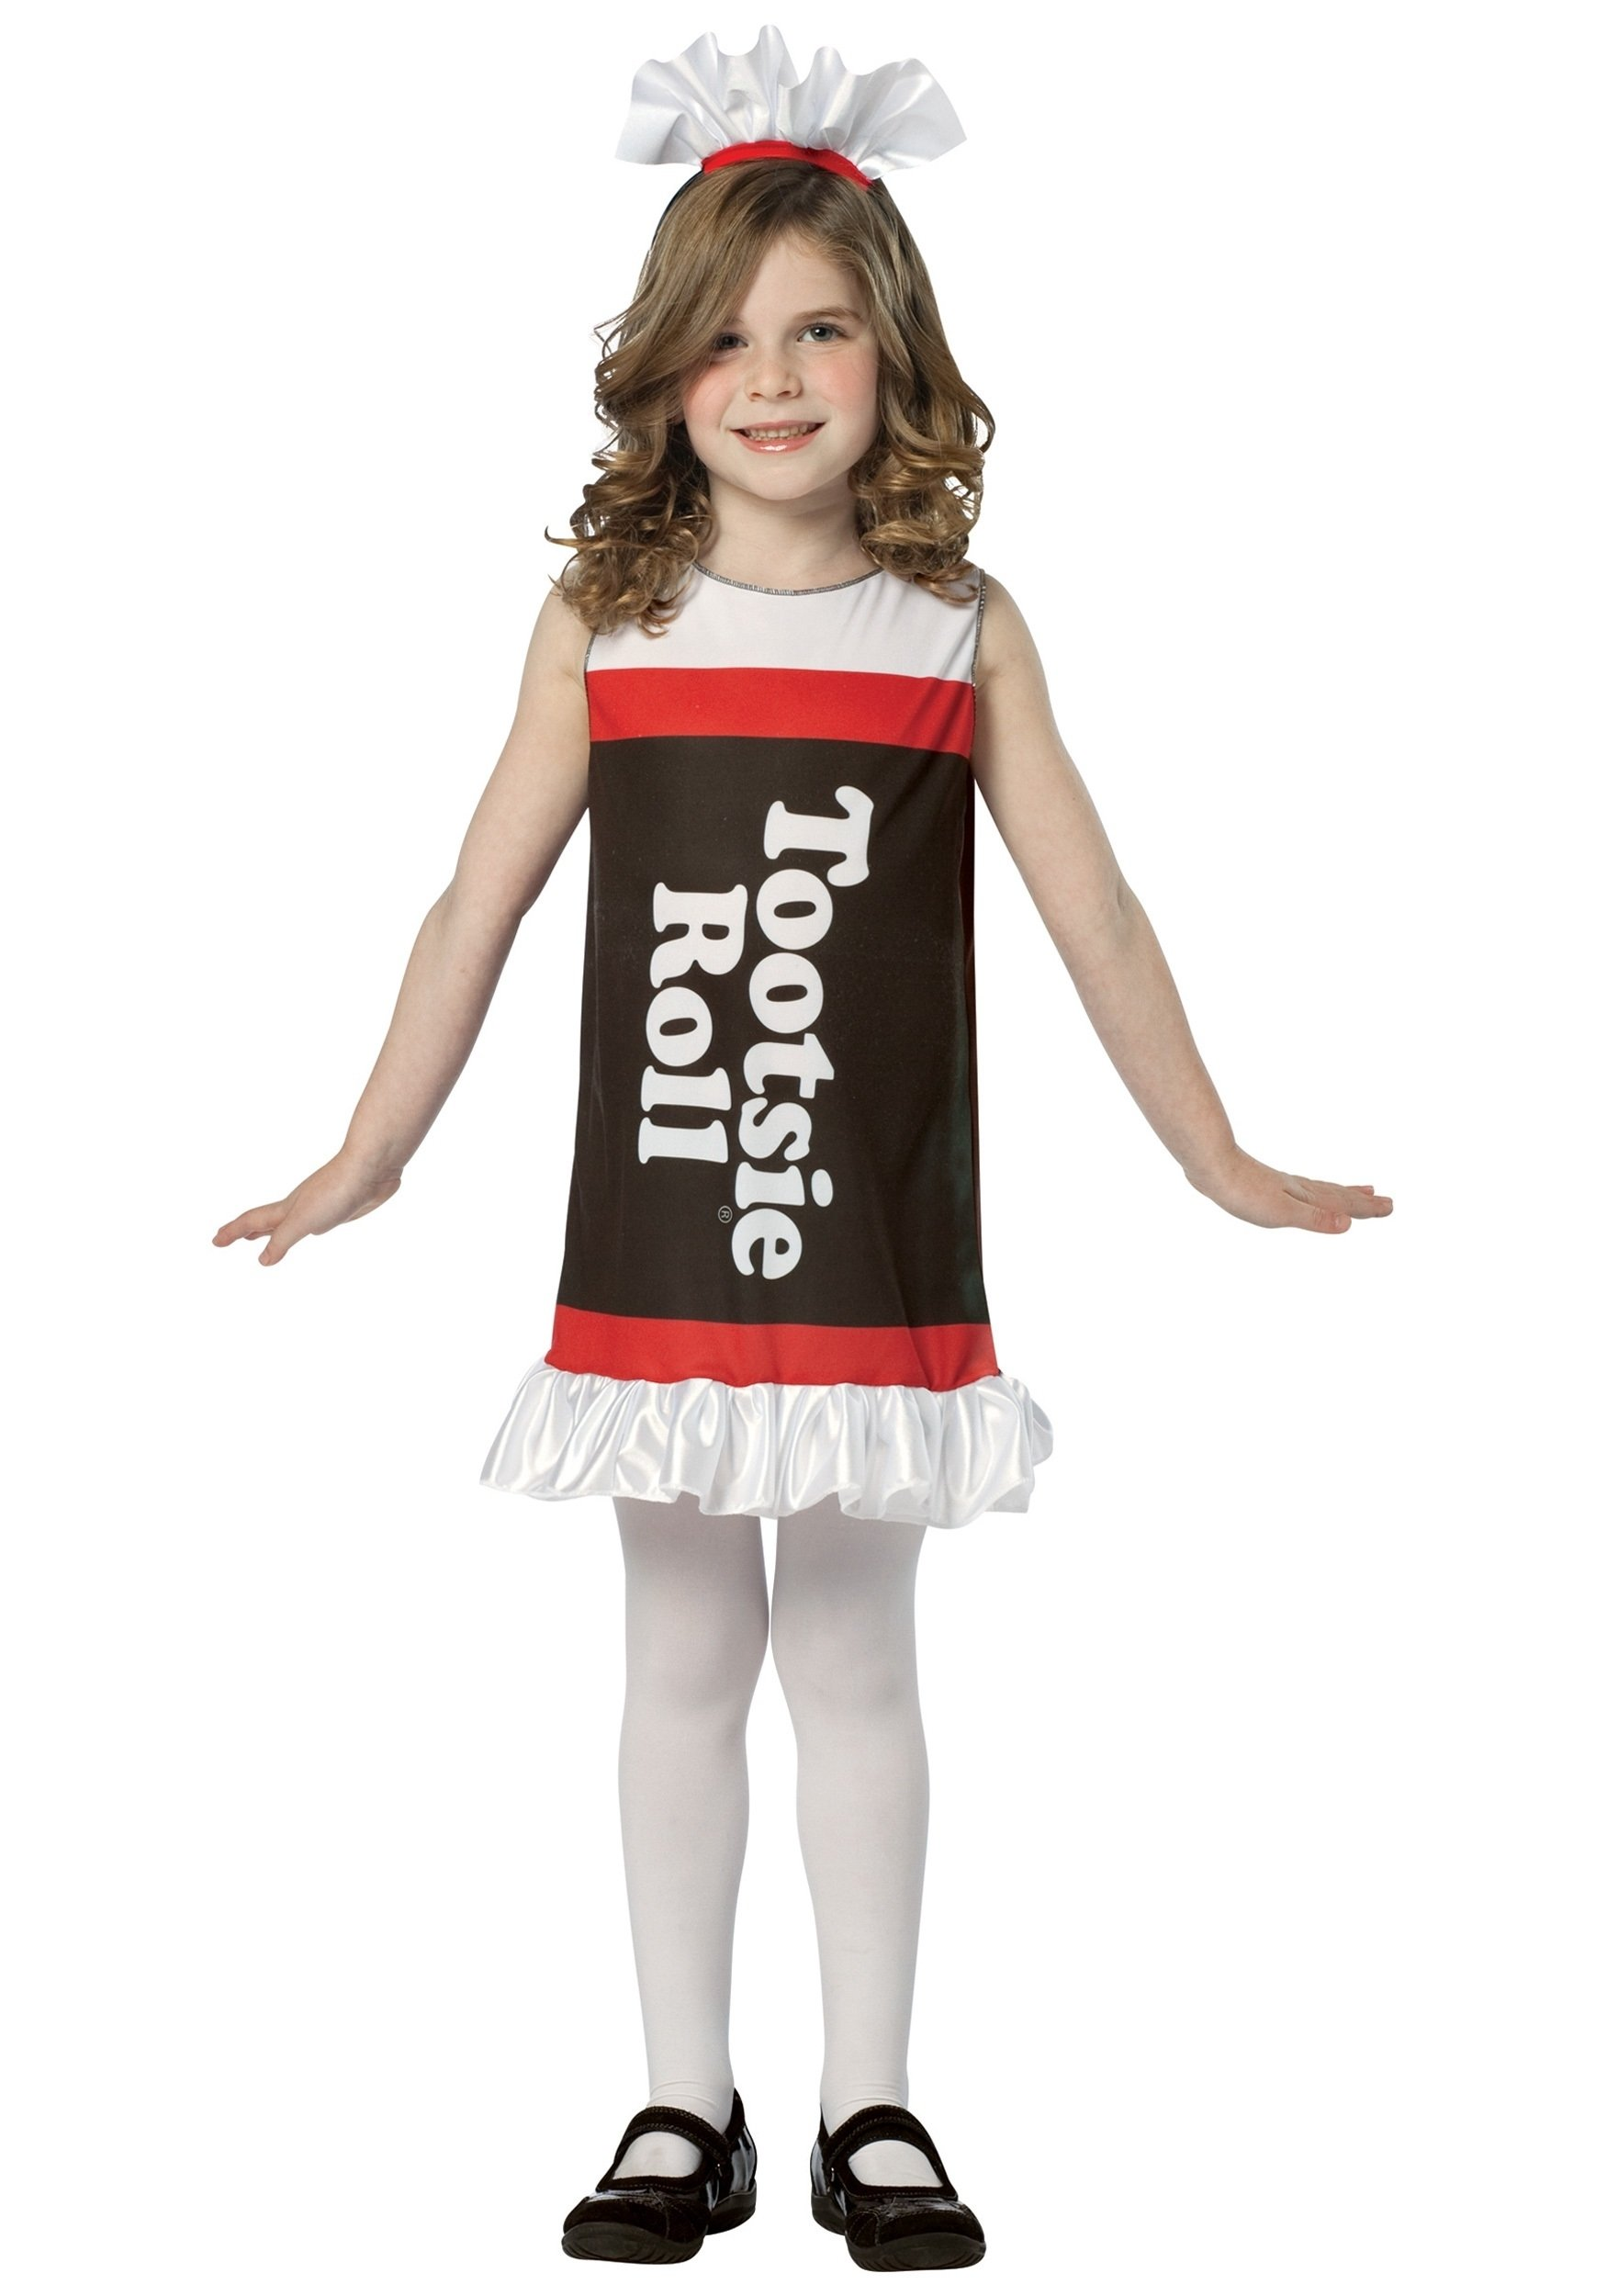 10 Ideal Cool Costume Ideas For Girls girls candy tootsie roll dress funny food child costumes 1